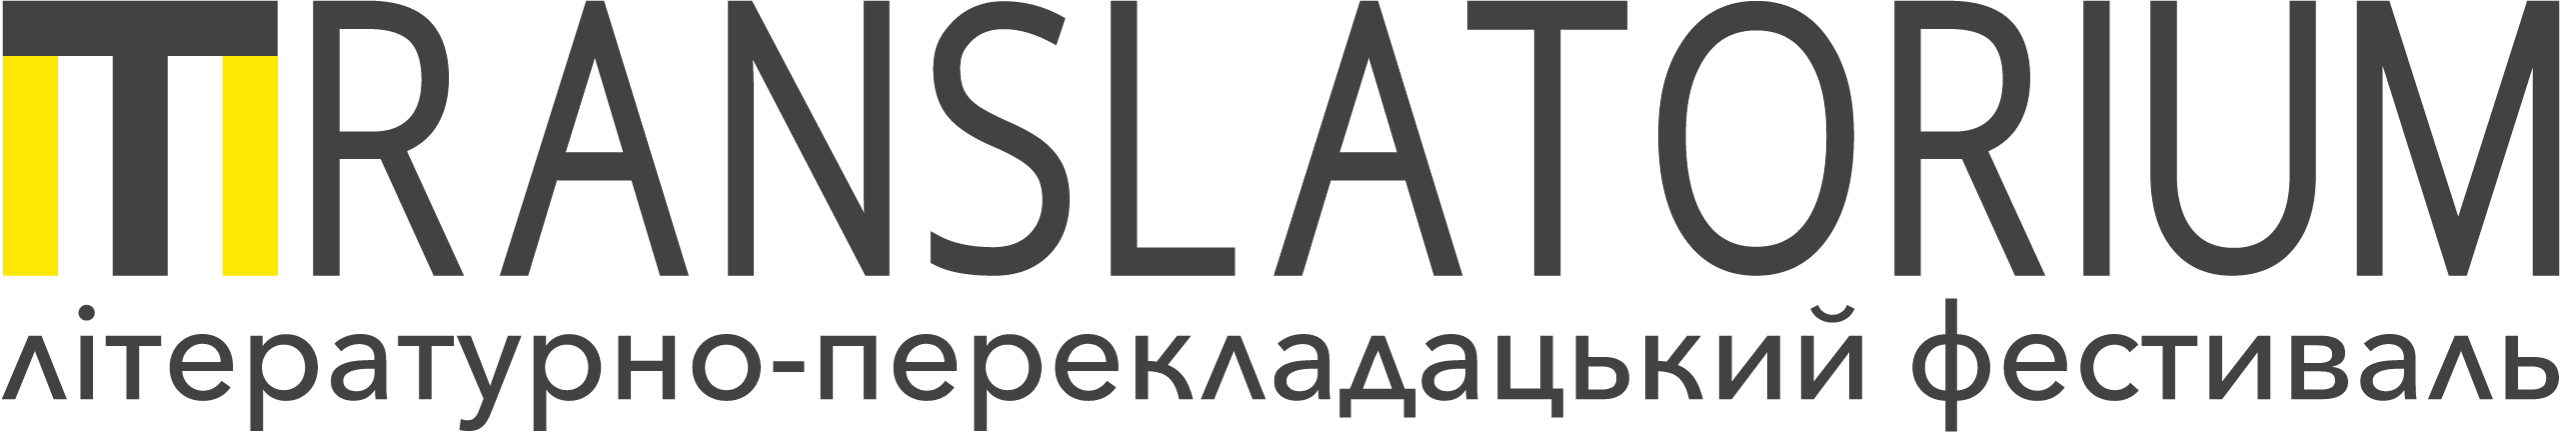 Translatorium Logo